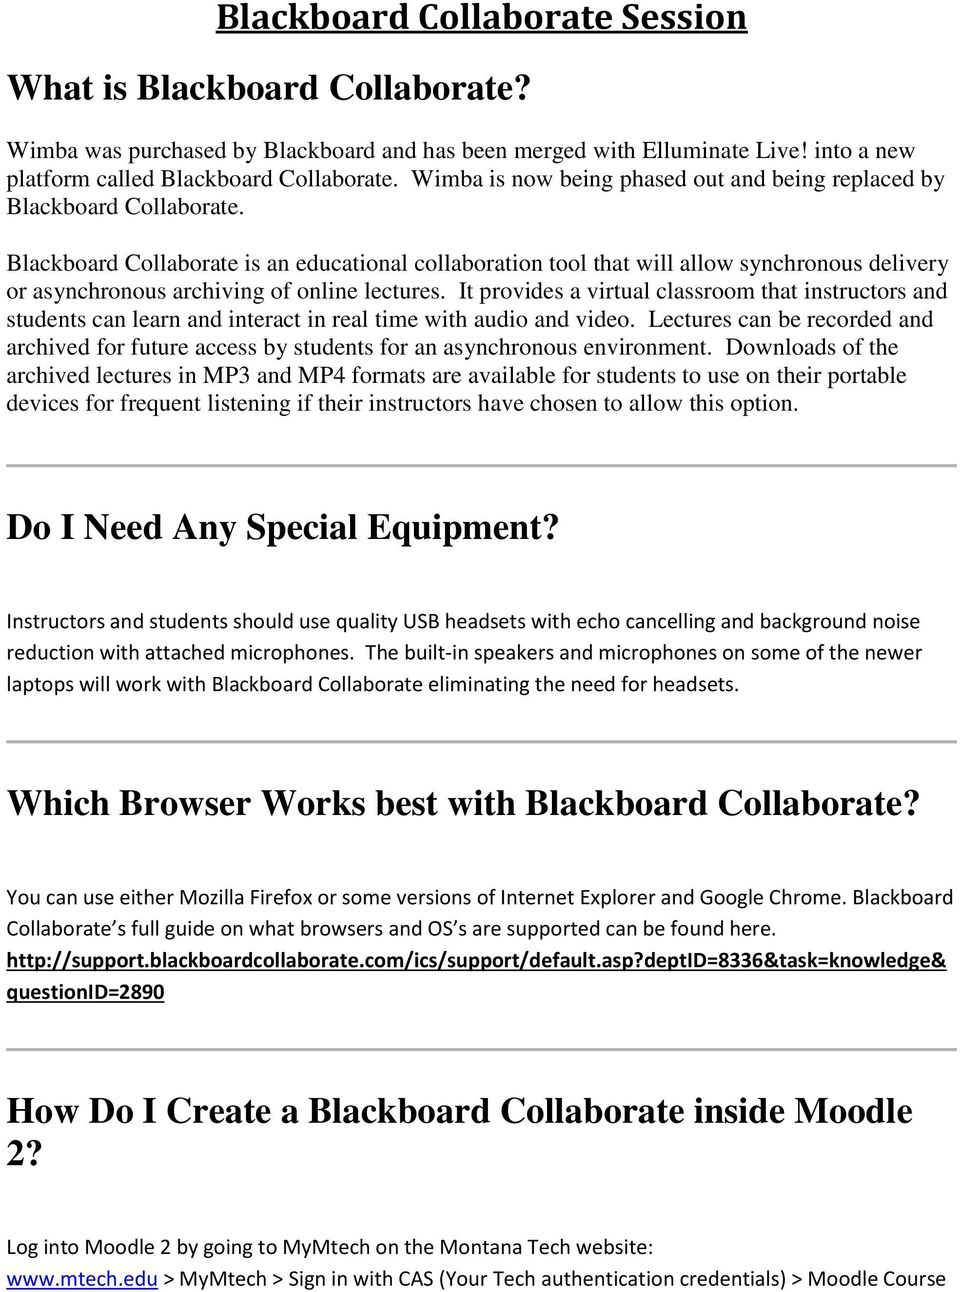 Blackboard Collaborate is an educational collaboration tool that will allow synchronous delivery or asynchronous archiving of online lectures.